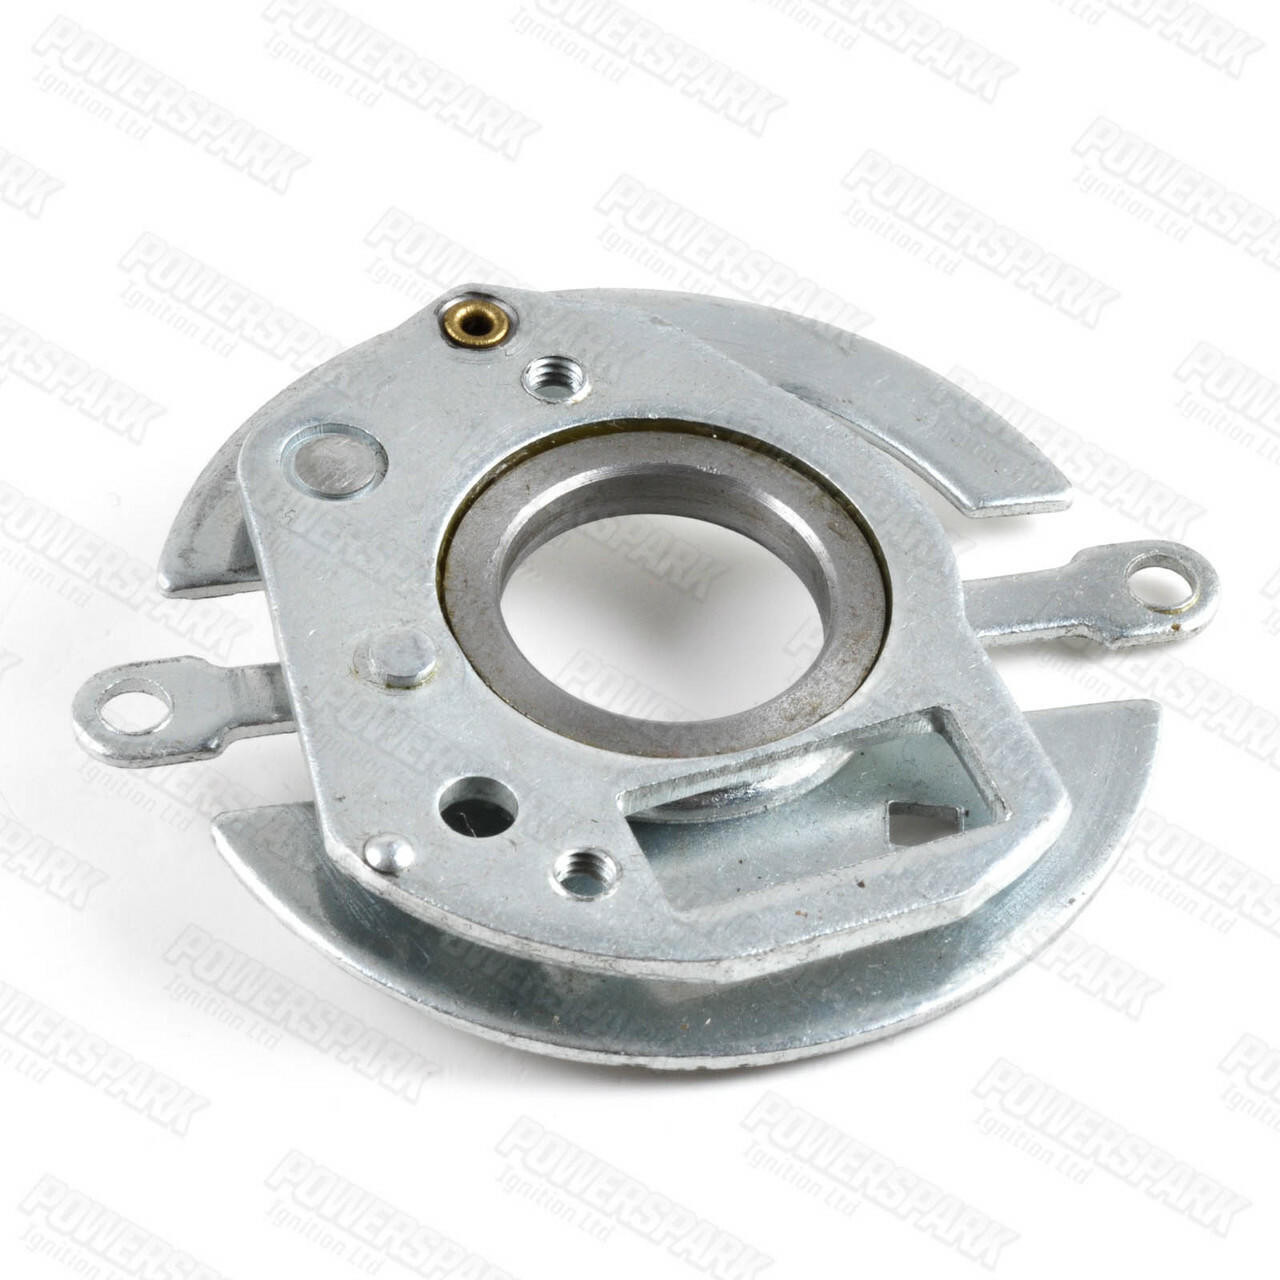 Lucas 43D Points Non-Vacuum Baseplate IA_43_points_plate